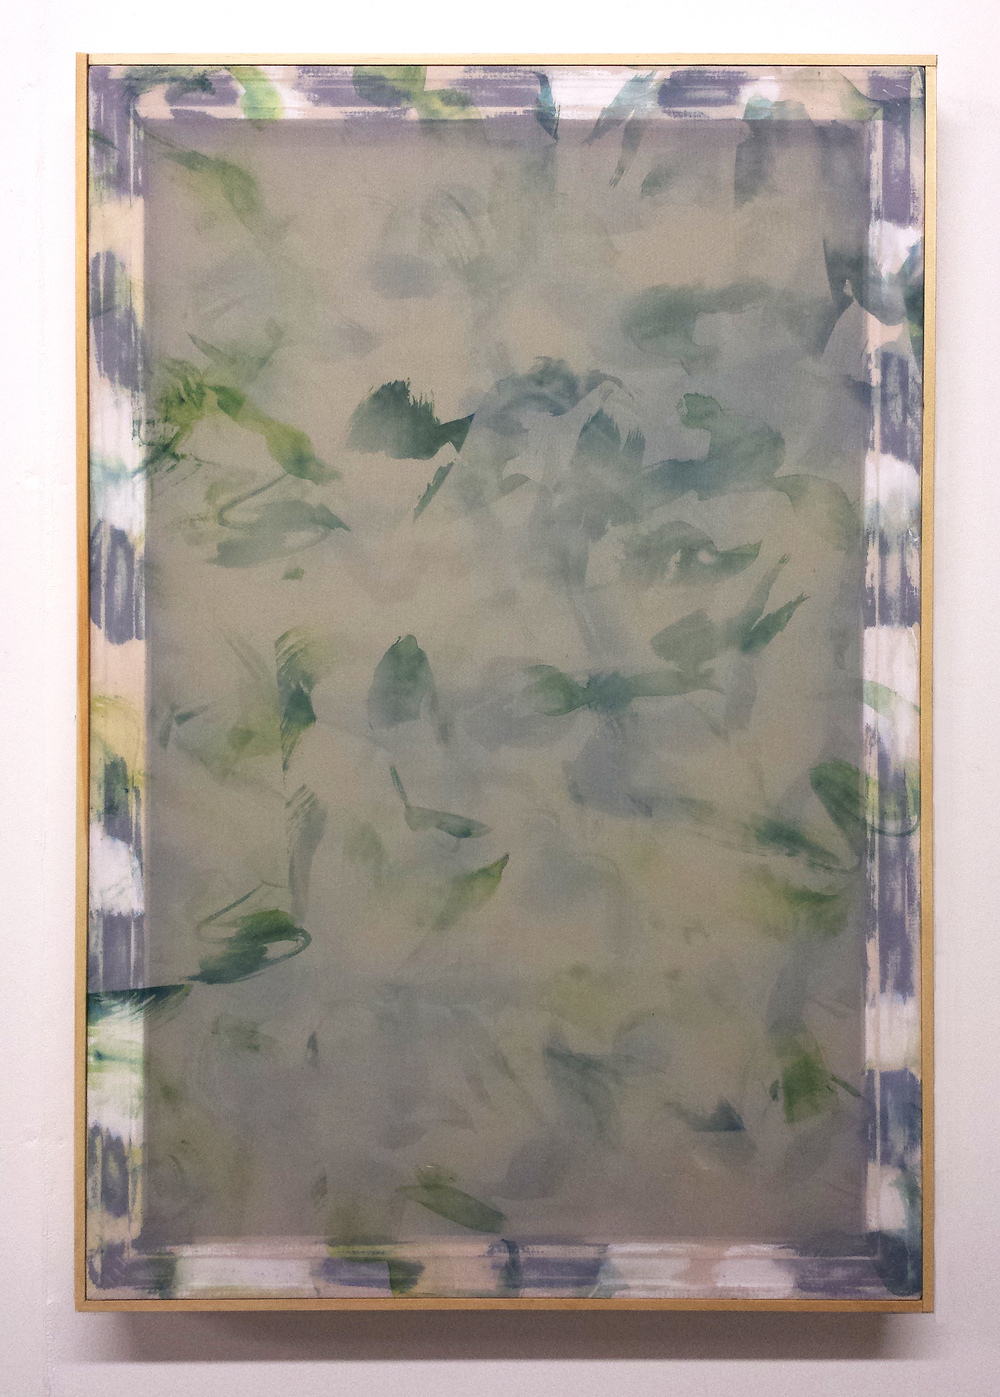 SARAH SANDS PHILLIPS  Veiling, Veiling , 2014. Fabric dye on two layers of polyester fabric, acrylic paint, artist frame, 36 x 24 x 1.5 inches.